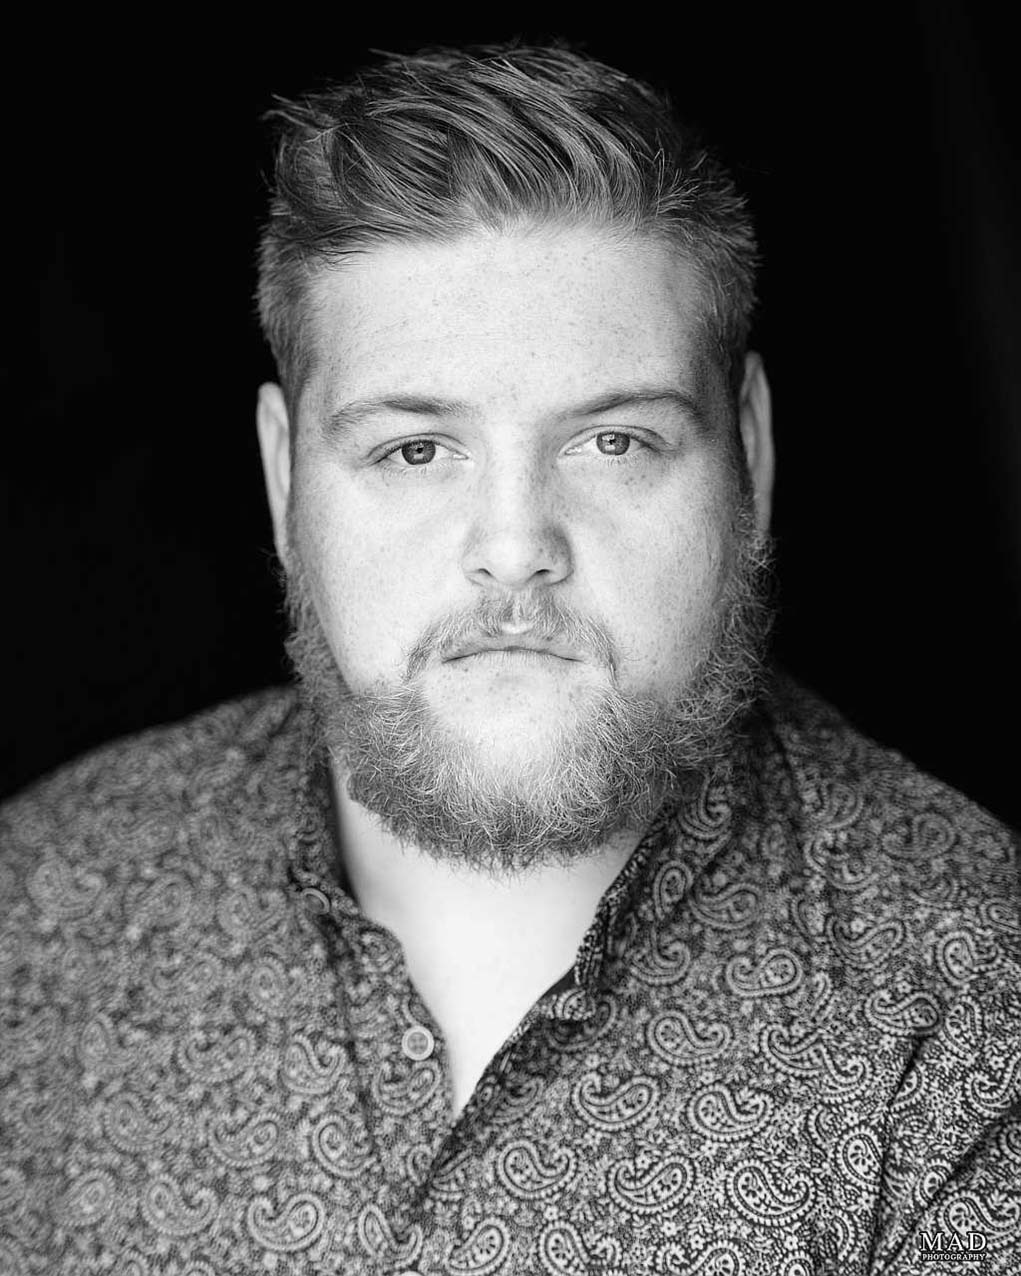 Mad Photography London Headshot Head Shot Male Actors DSC 2625 1